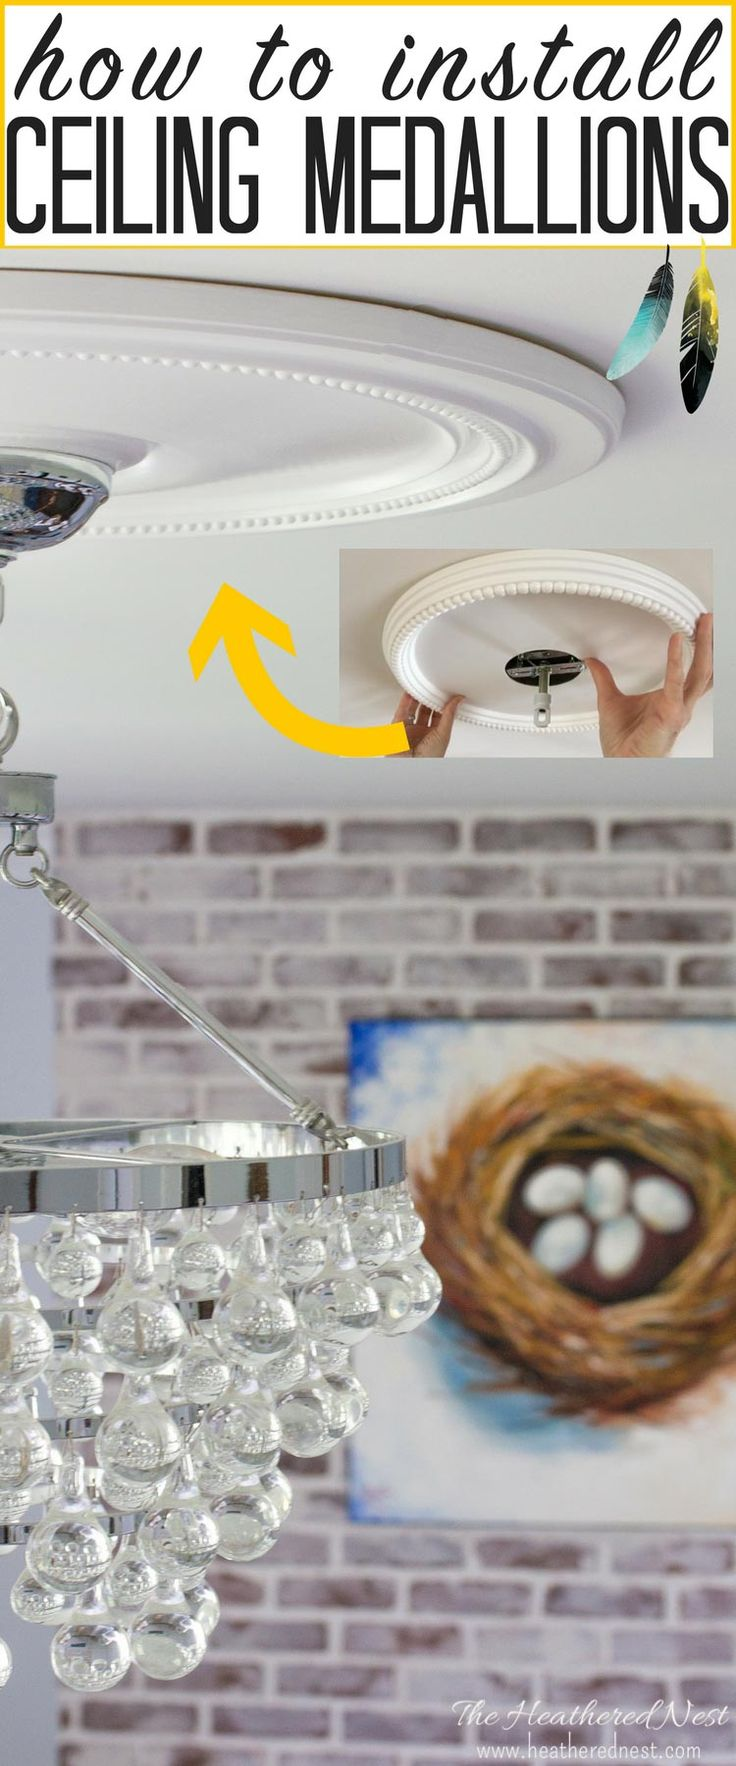 Cool home electrical projects